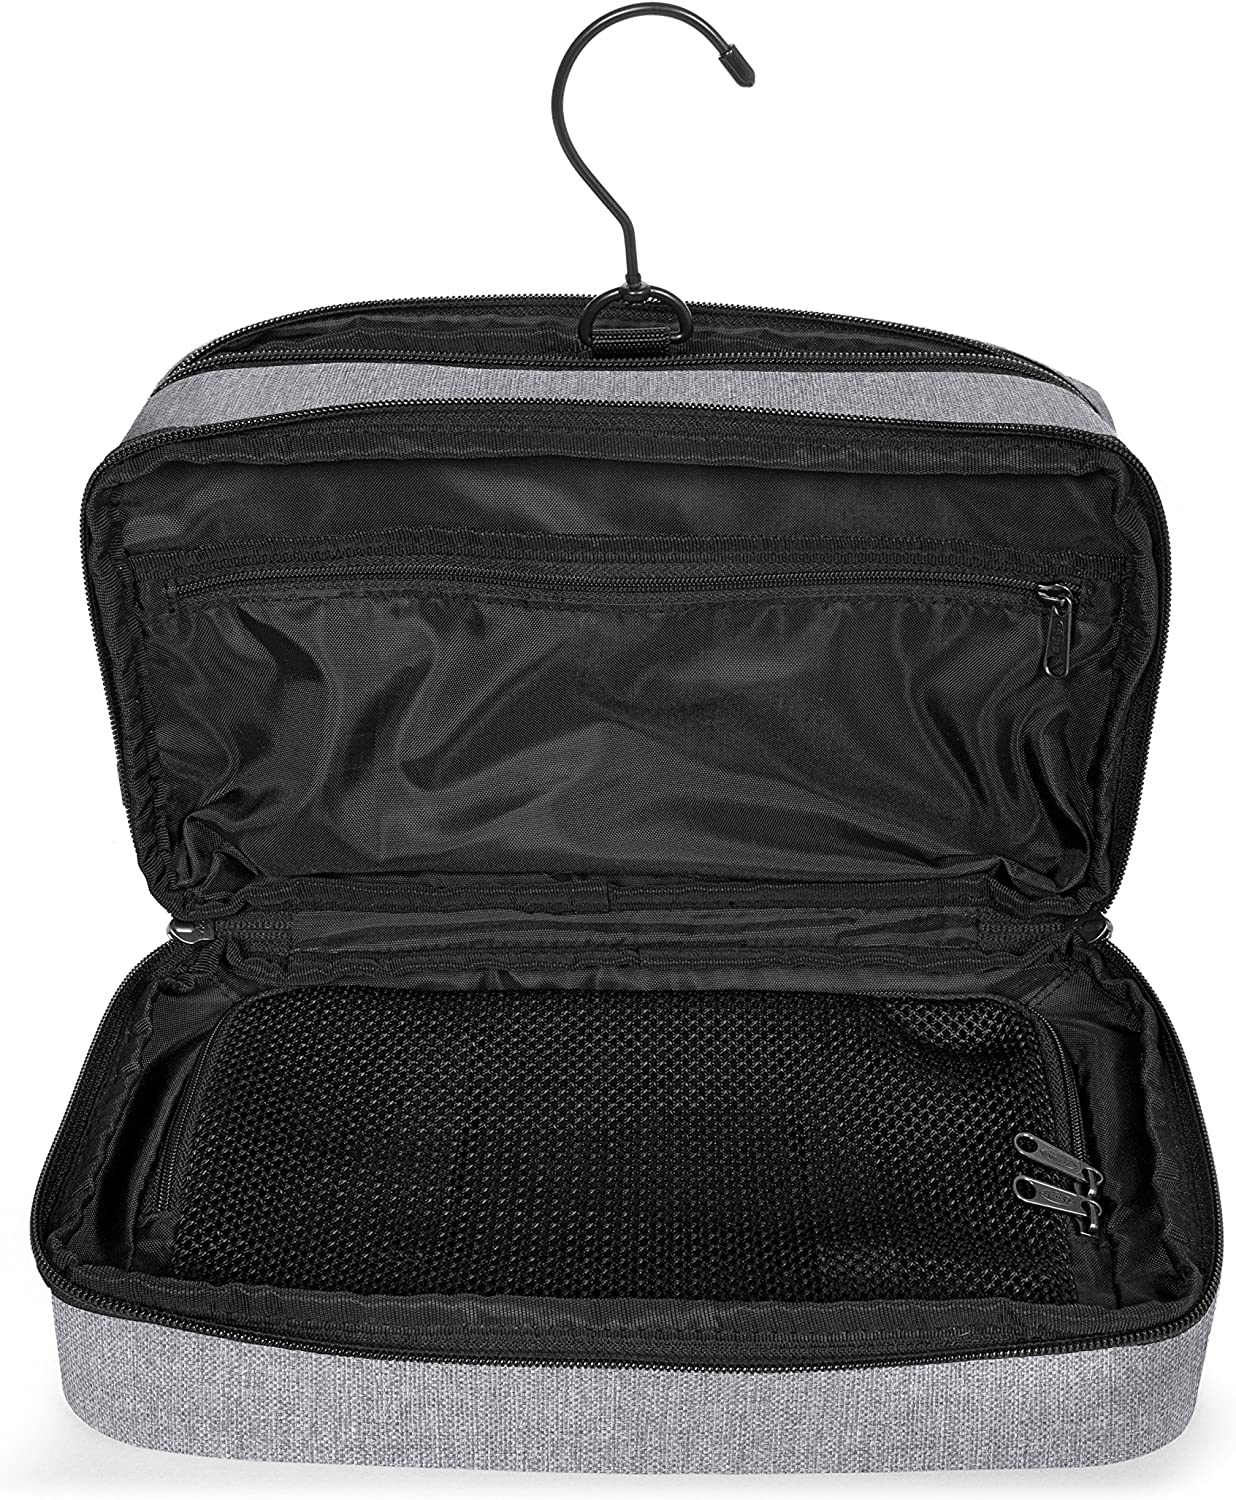 Gris 27 cm Black Denim Eastpak SPIDER Trousse de toilette